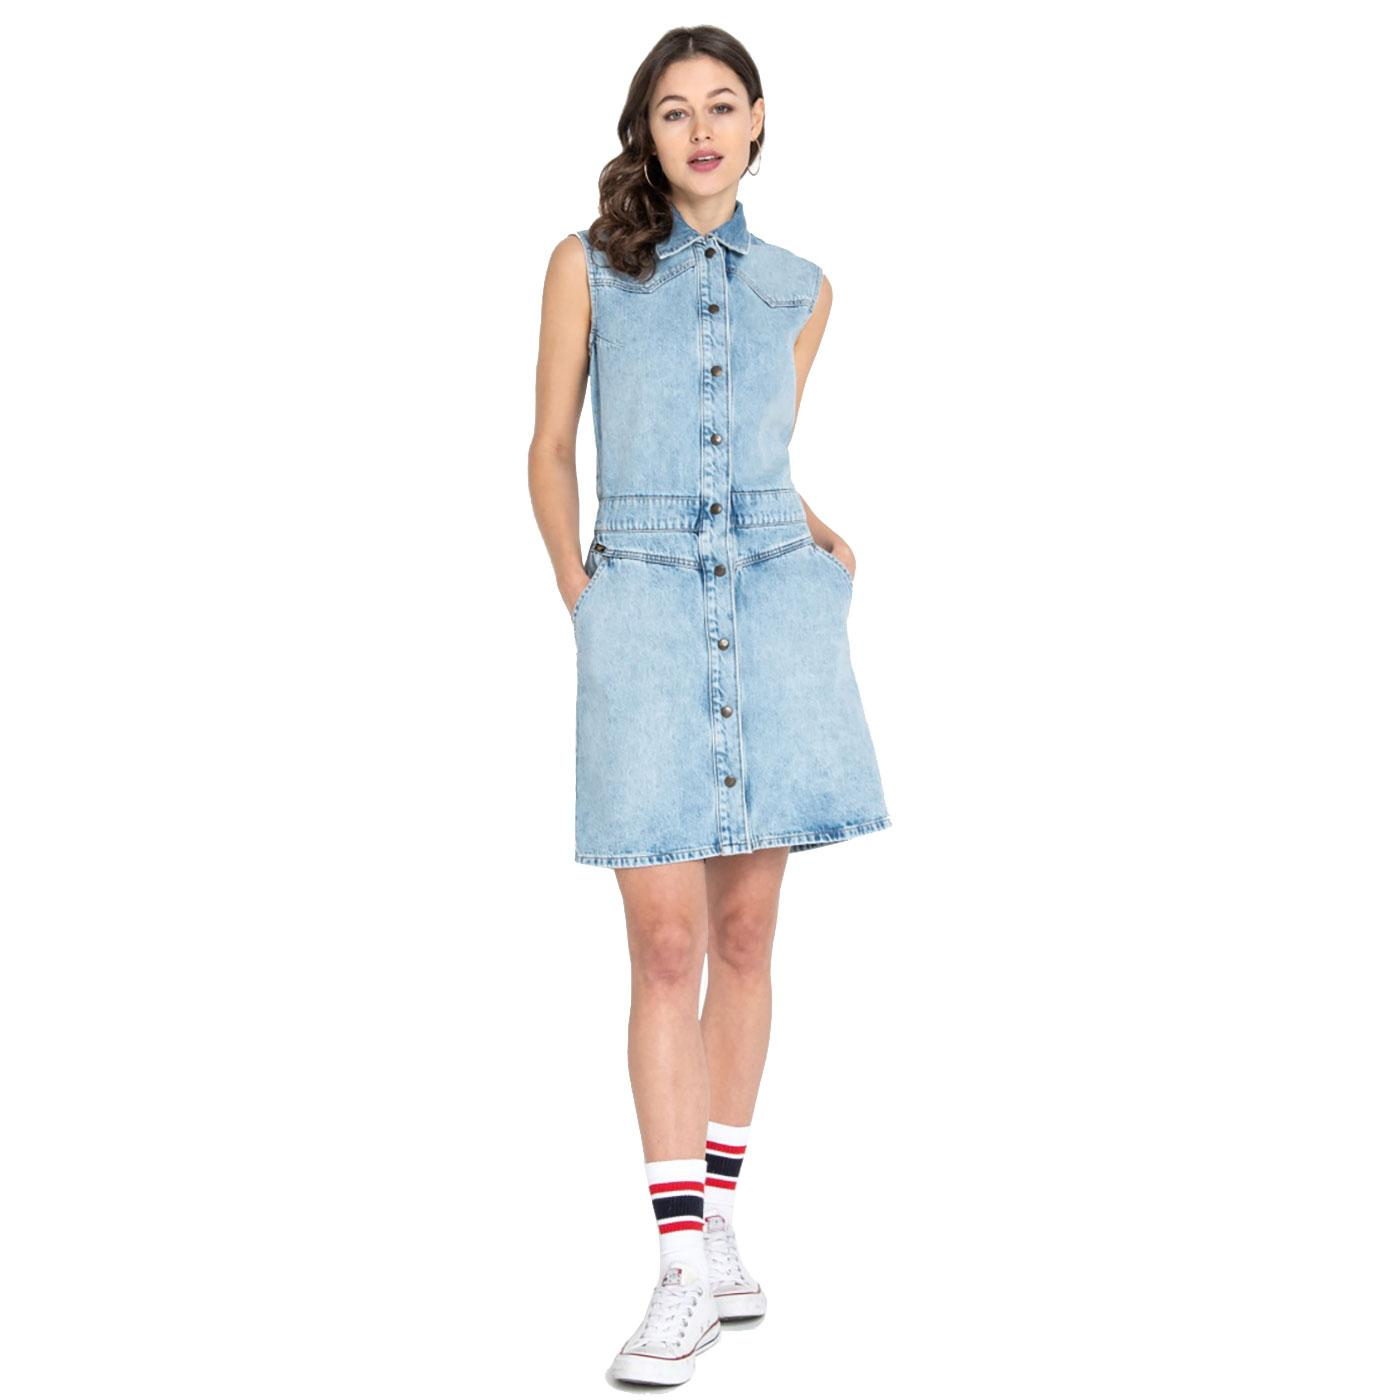 LEE Retro 70s Button Up Denim Mom Dress GET LIGHT